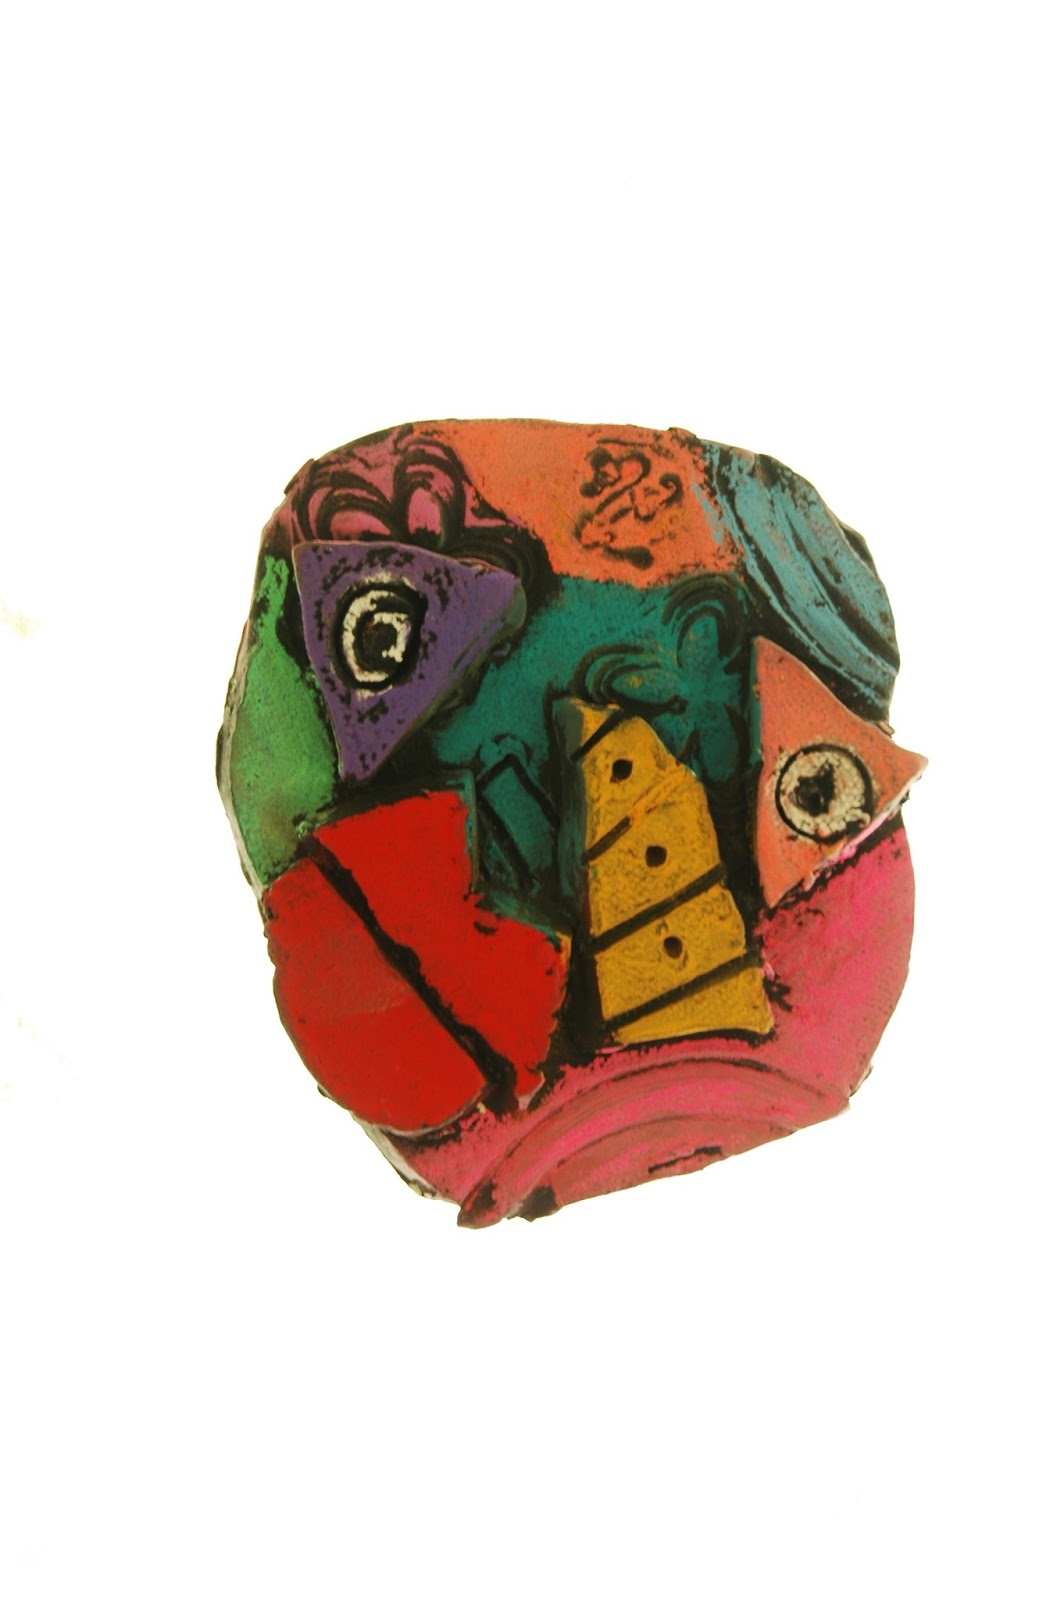 Make Stuff 4th Grade Picasso Inspired Clay Faces